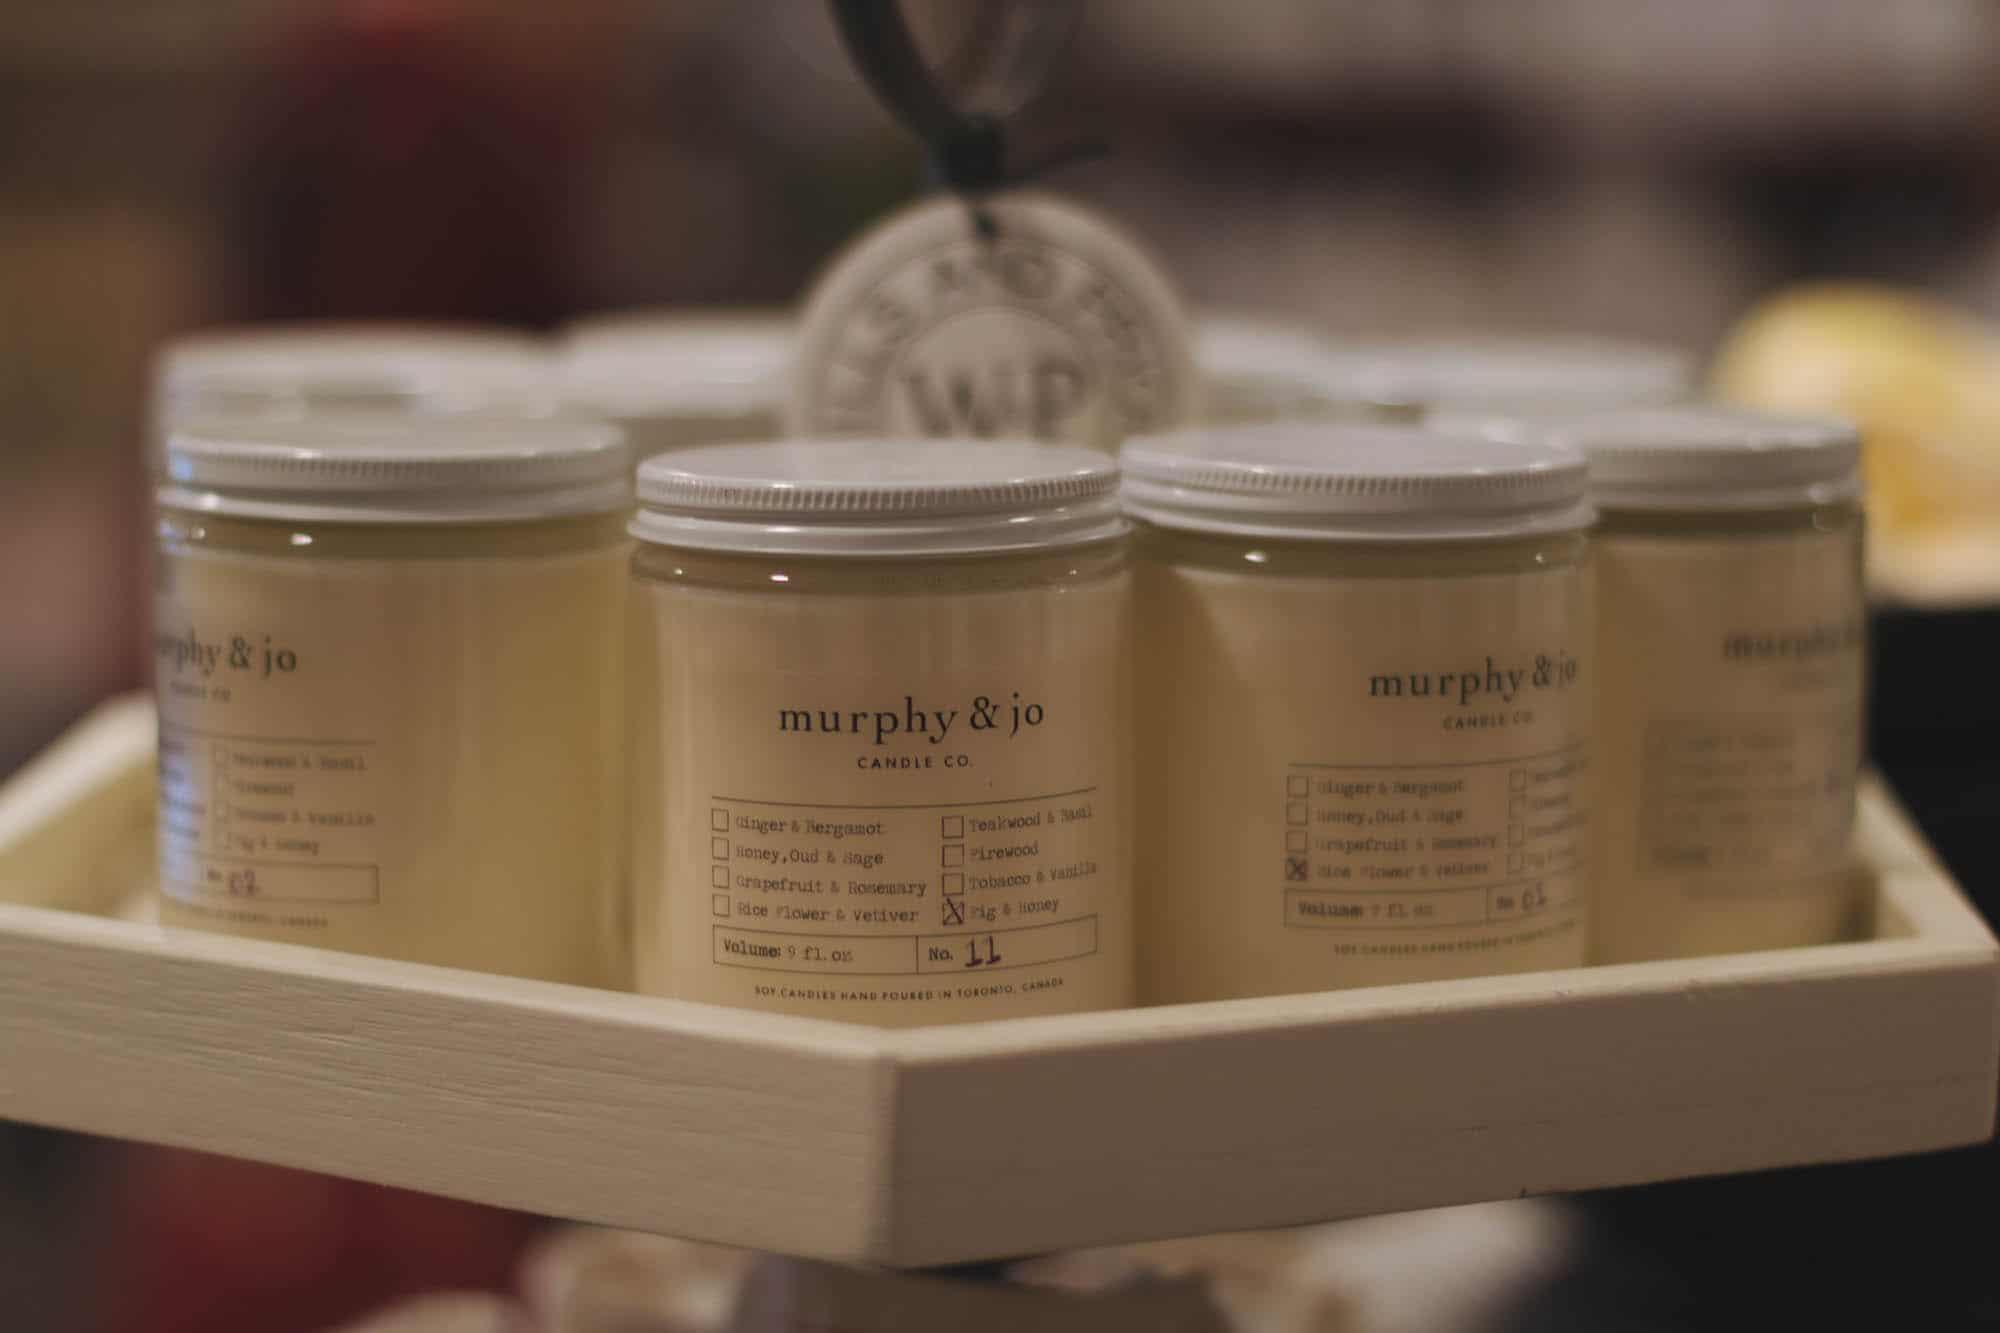 Murphy & Jo Candle Co. at Wills & Prior, Stratford, Ontario